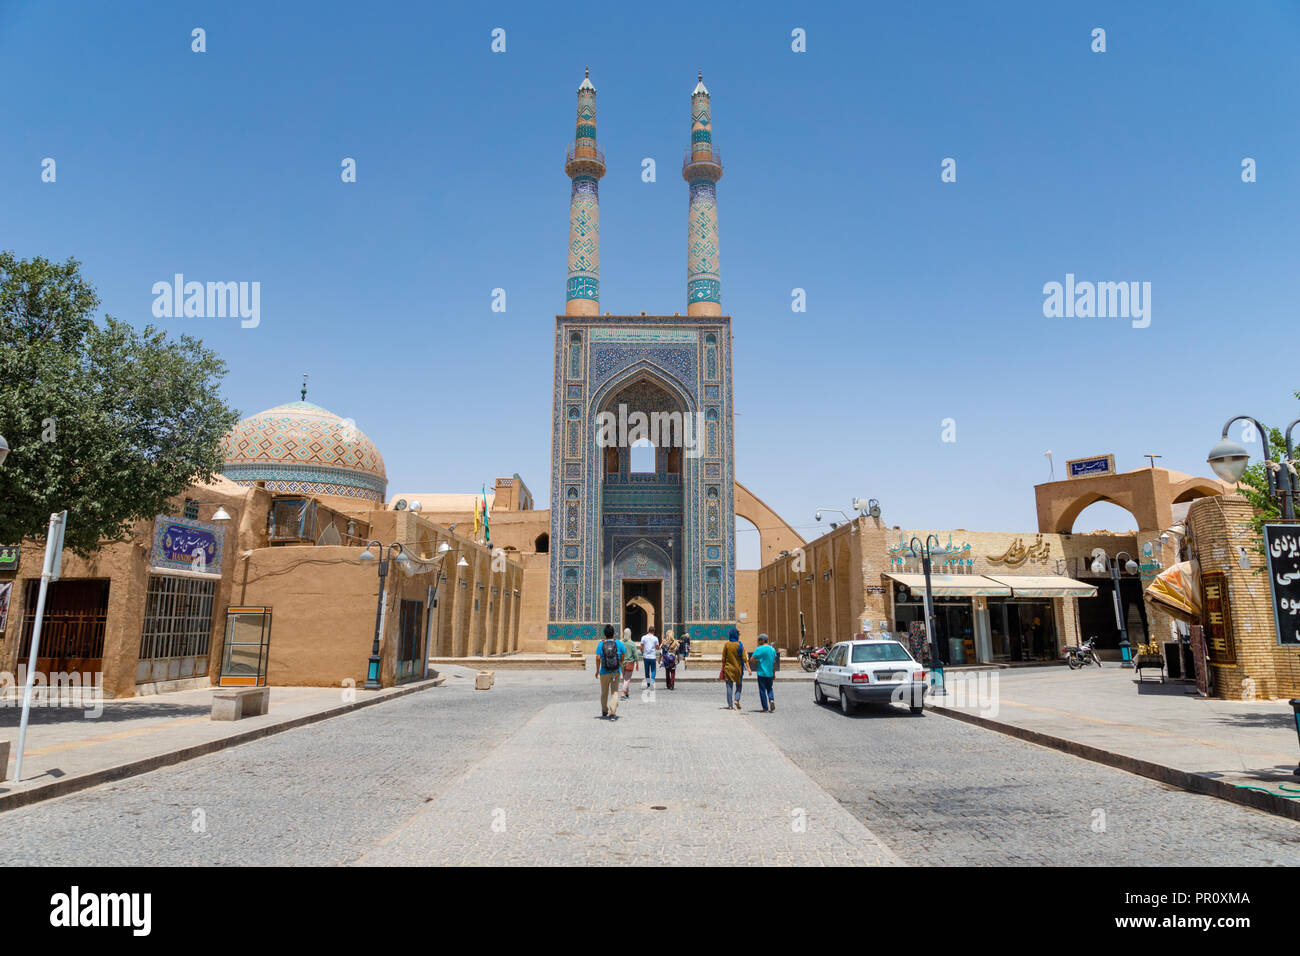 Yazd, Iran -  June 2018: Masjed-i Jame mosque in the old town of Yazd, Iran. - Stock Image